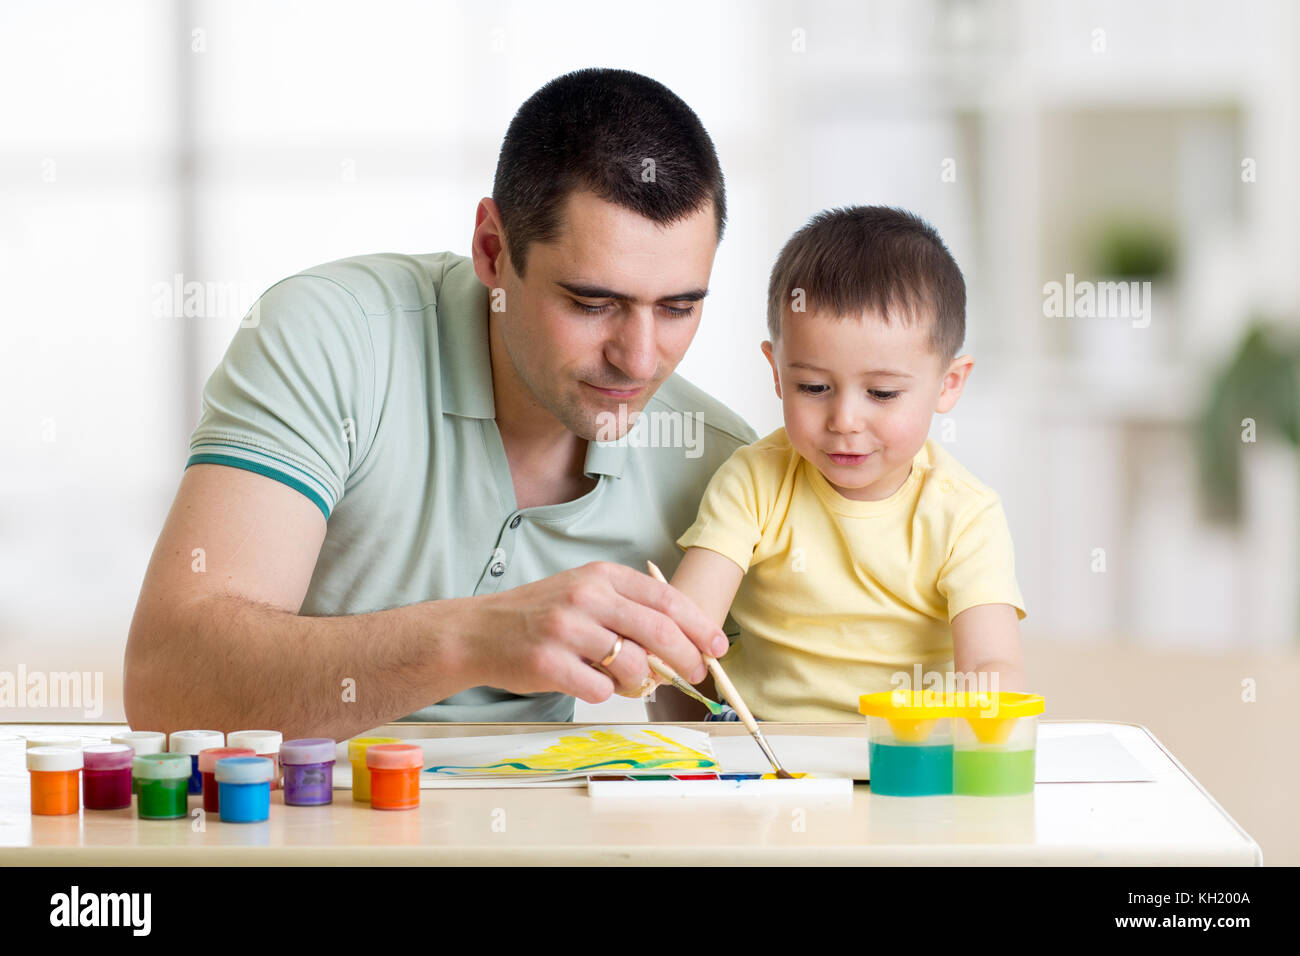 Father and child paint together. Dad teaches son how to paint correct and beautiful on paper. Family creativity - Stock Image